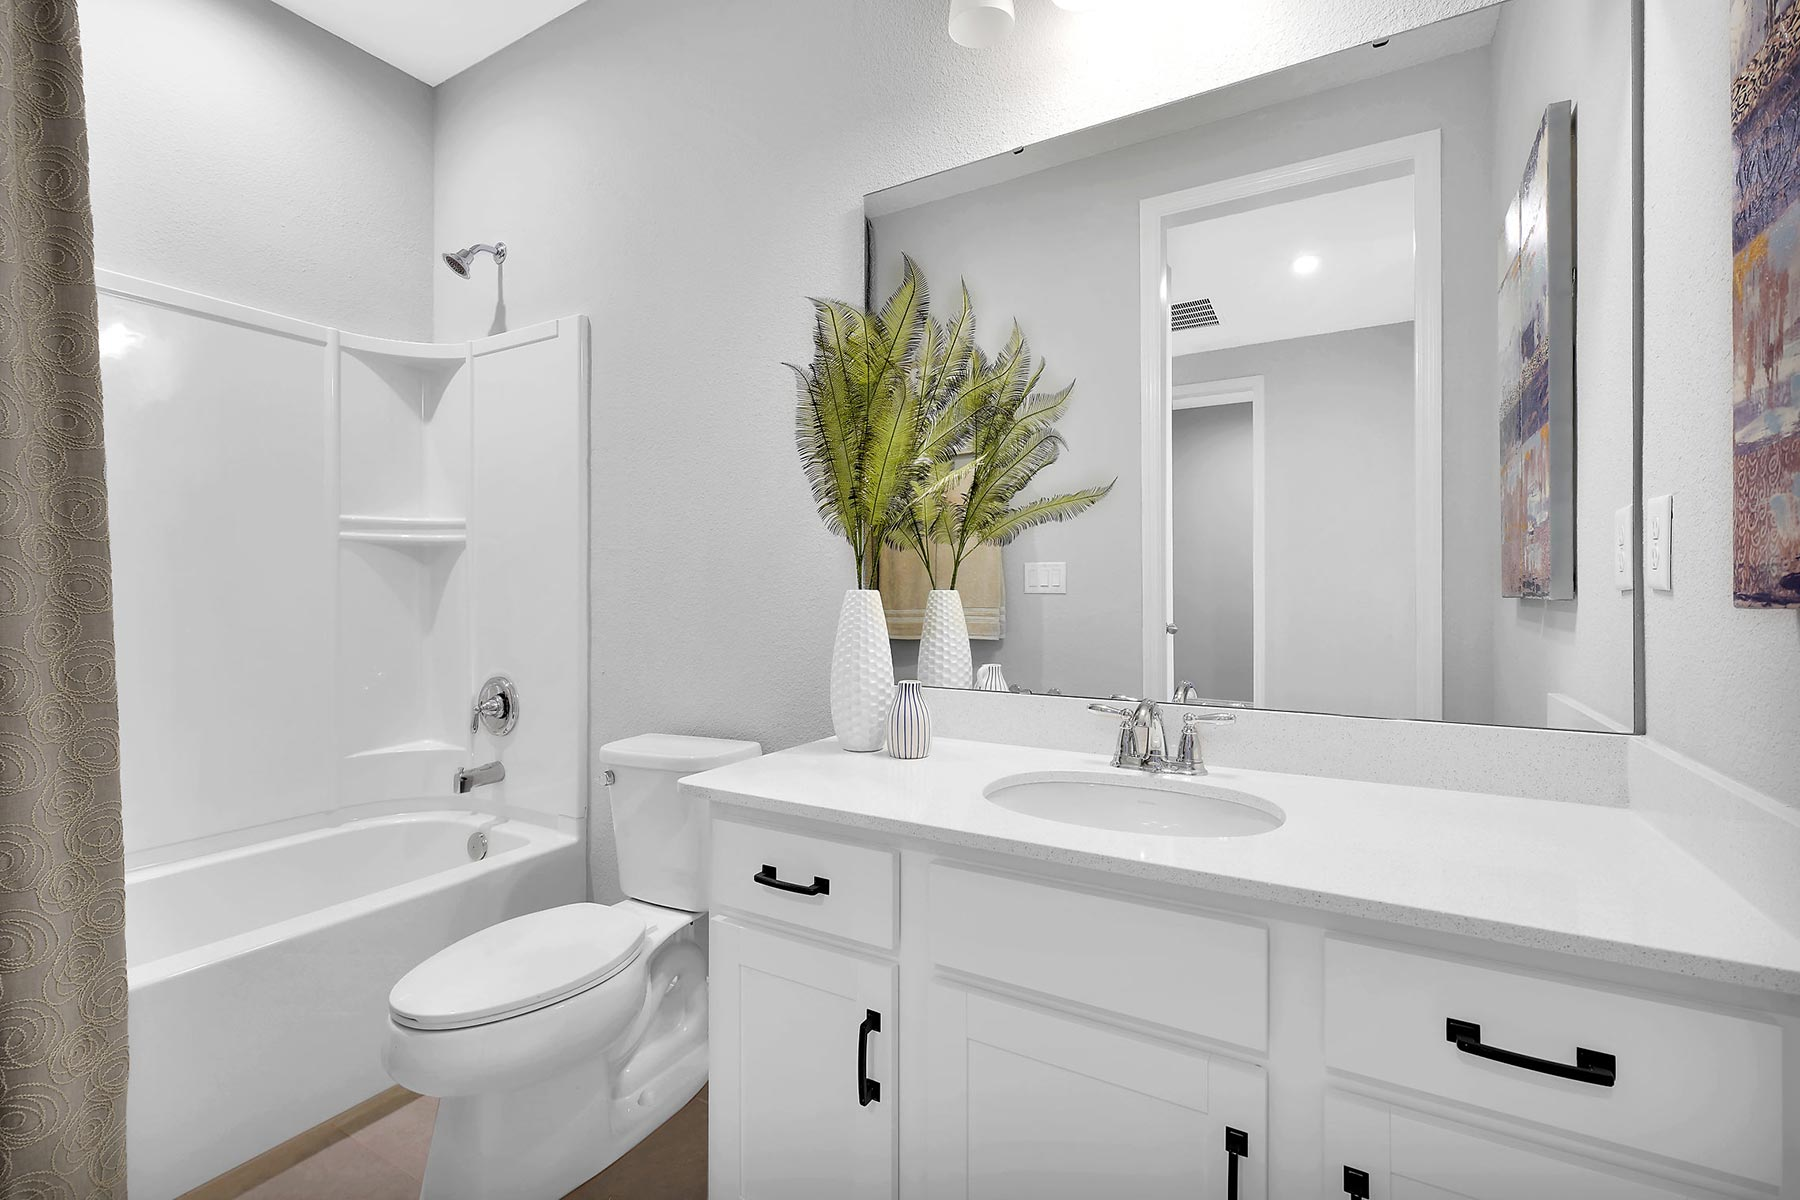 Rialta Plan Bath at Pablo Cove in Jacksonville Florida by Mattamy Homes